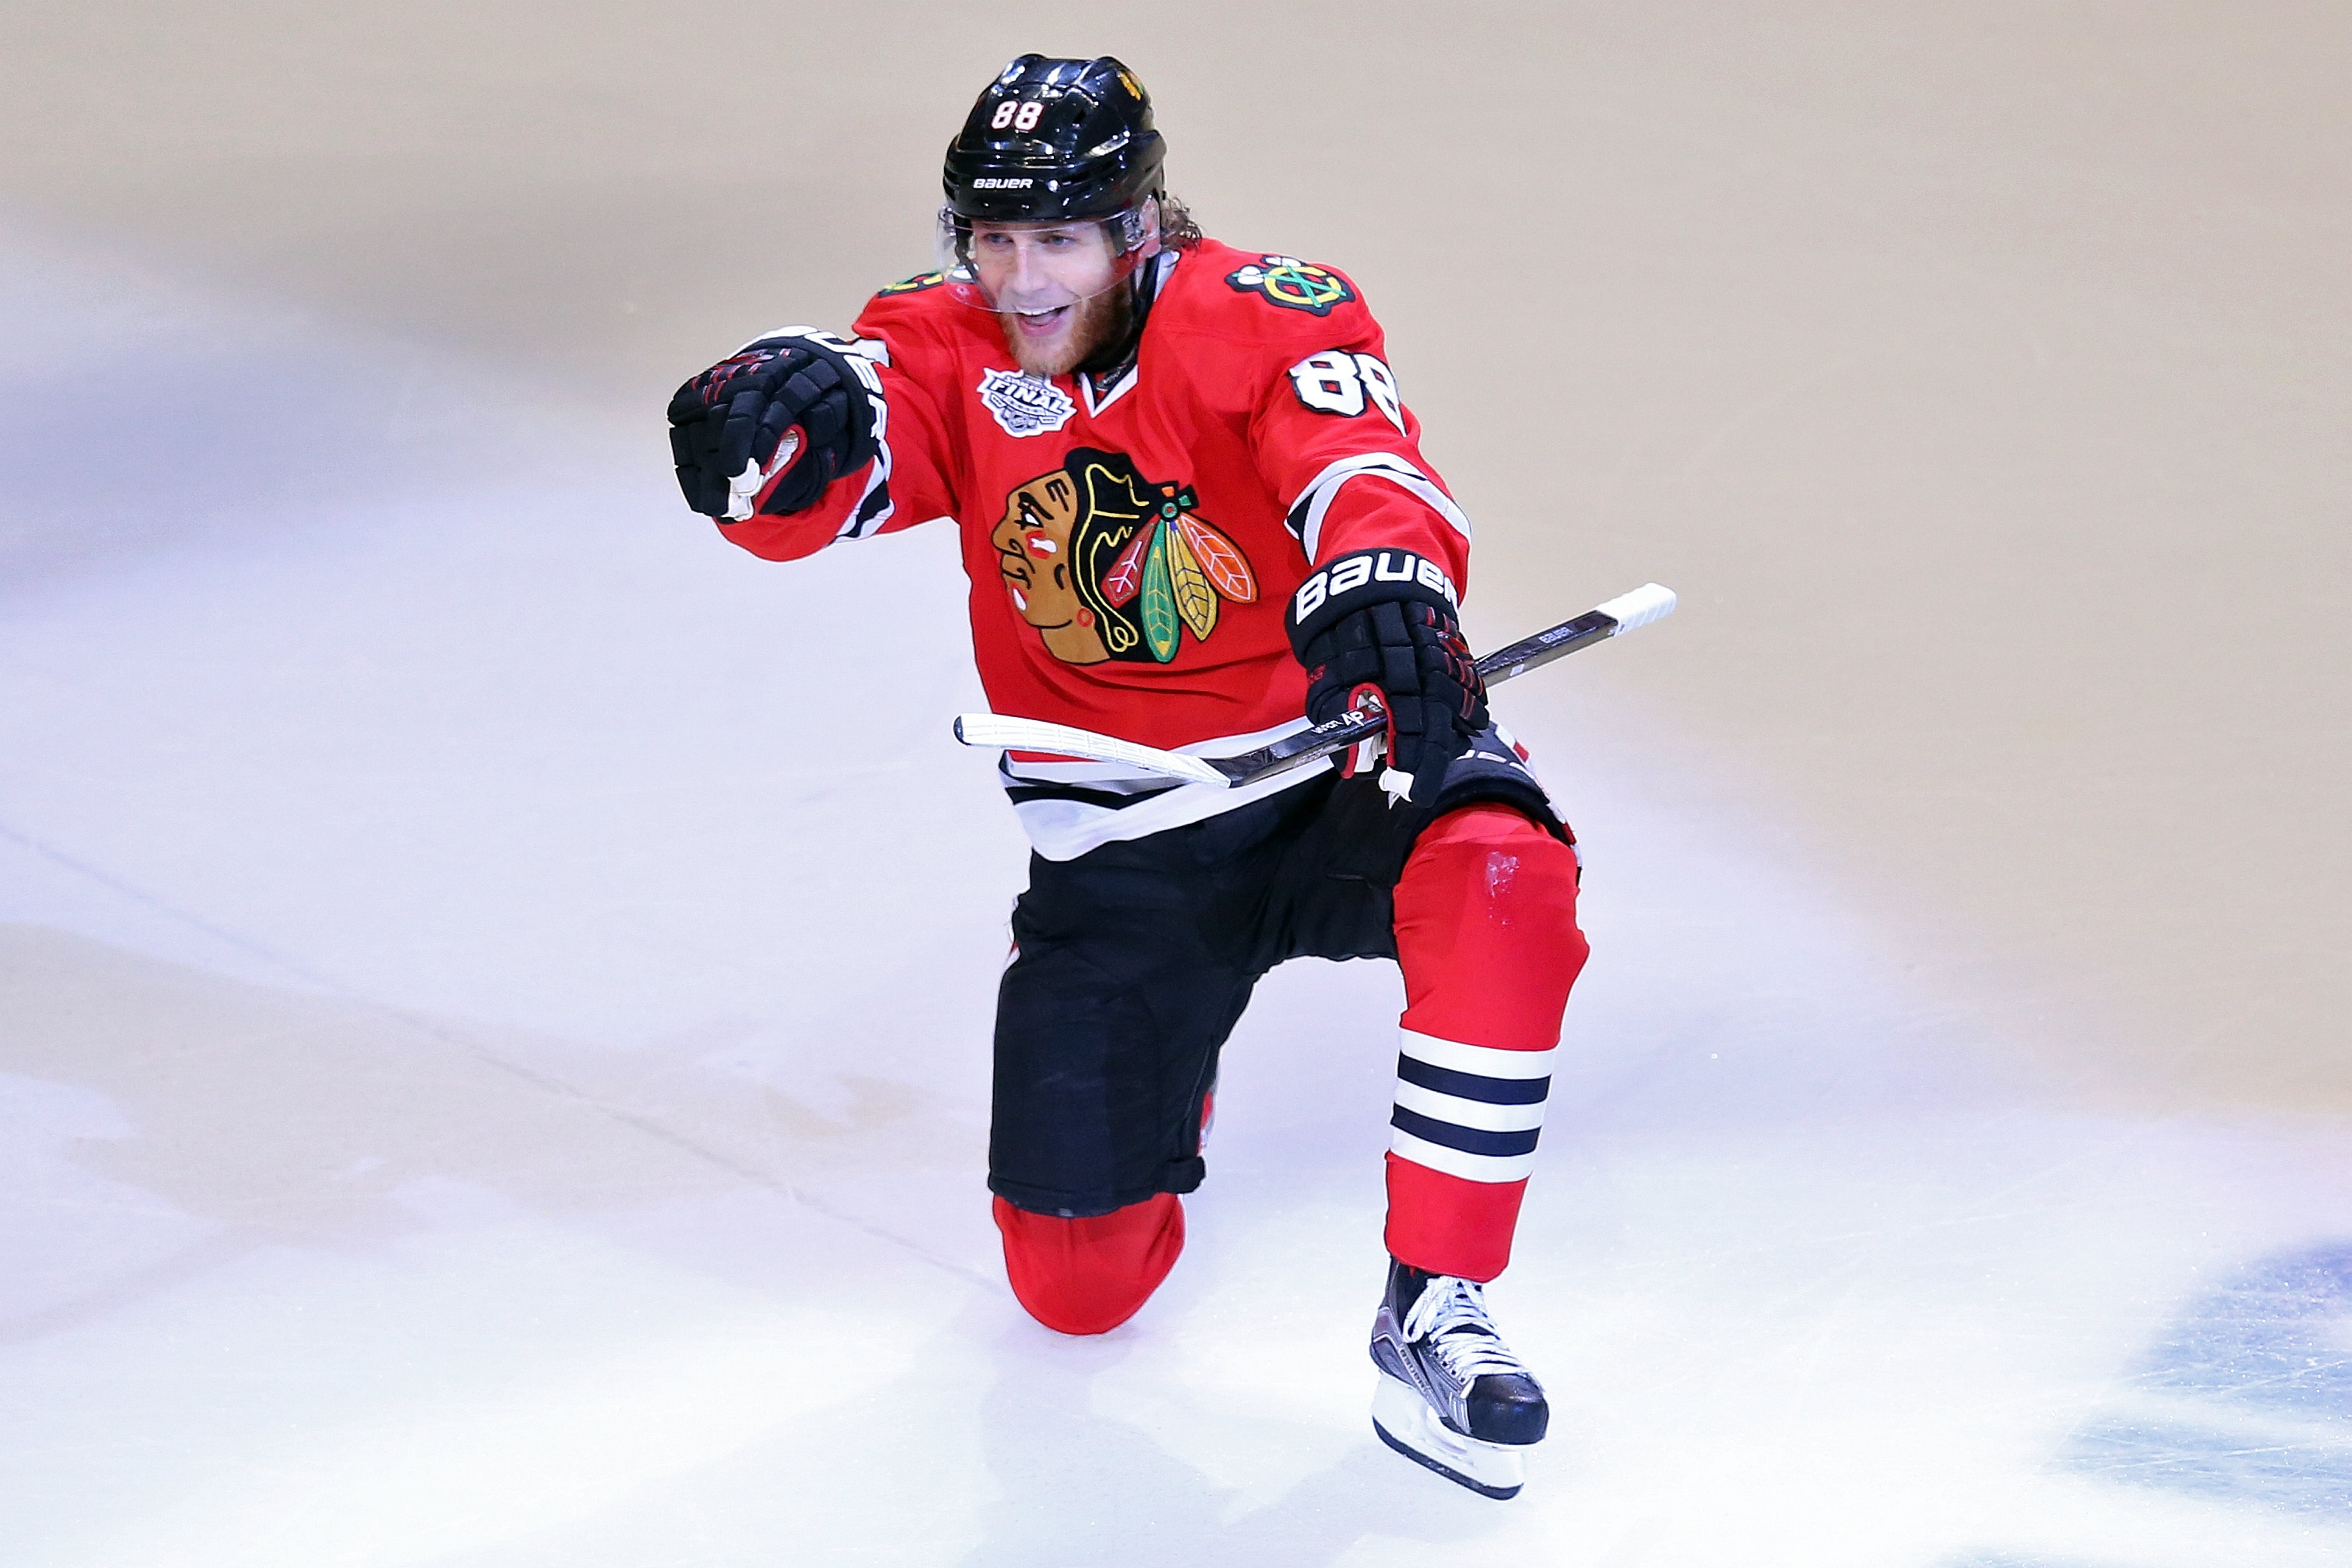 CHICAGO, IL - JUNE 15:  Patrick Kane #88 of the Chicago Blackhawks celebrates after scoring a goal in the third period against the Tampa Bay Lightning during Game Six of the 2015 NHL Stanley Cup Final at the United Center  on June 15, 2015 in Chicago, Illinois.  (Photo by Jonathan Daniel/Getty Images)